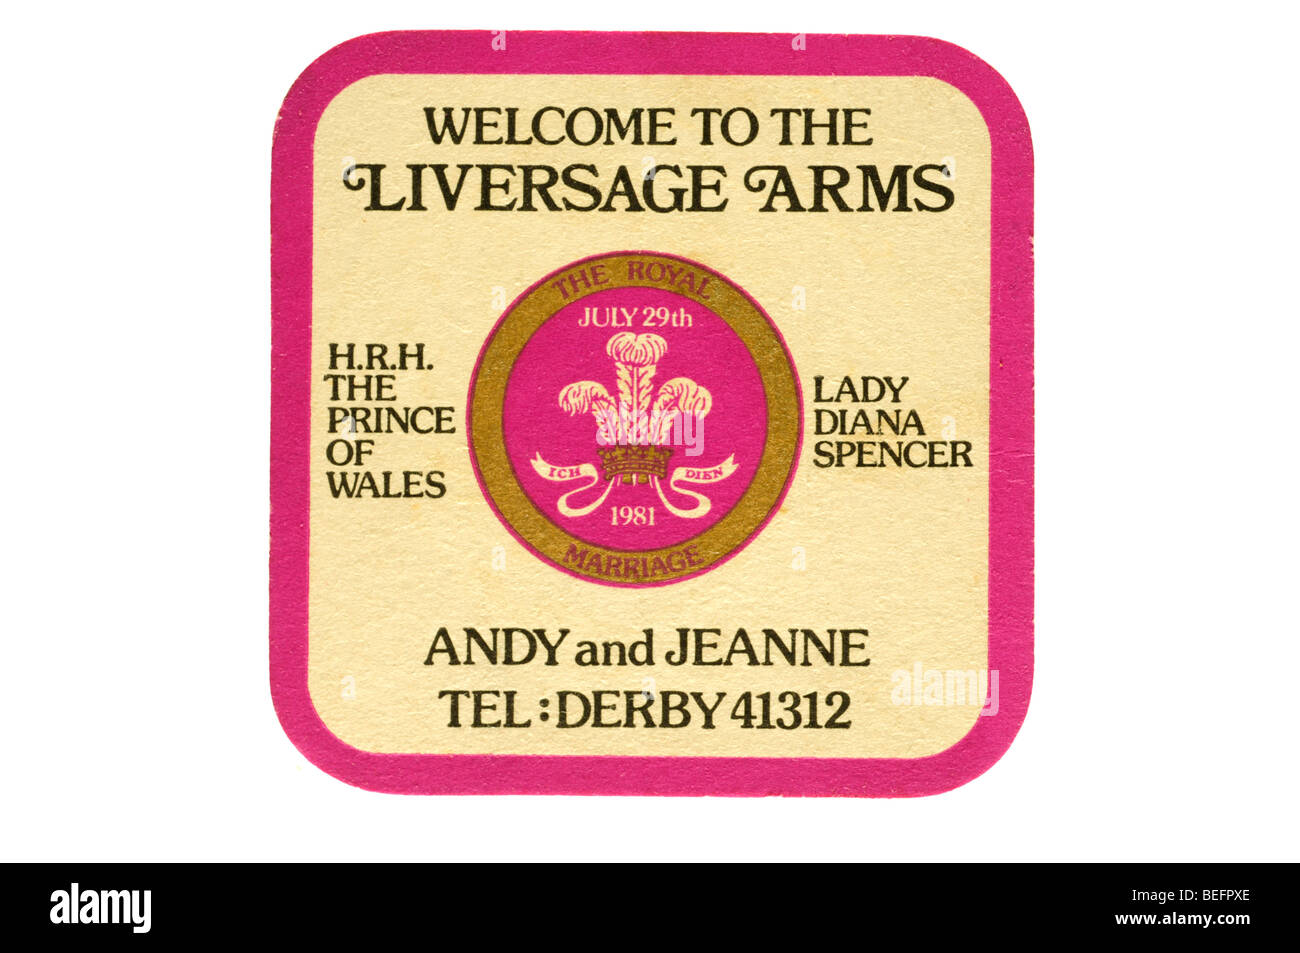 welcome to the liversage arms h r h the prince of wales lady diana spencer andy and jeanne tel derby 41312 the royal - Stock Image